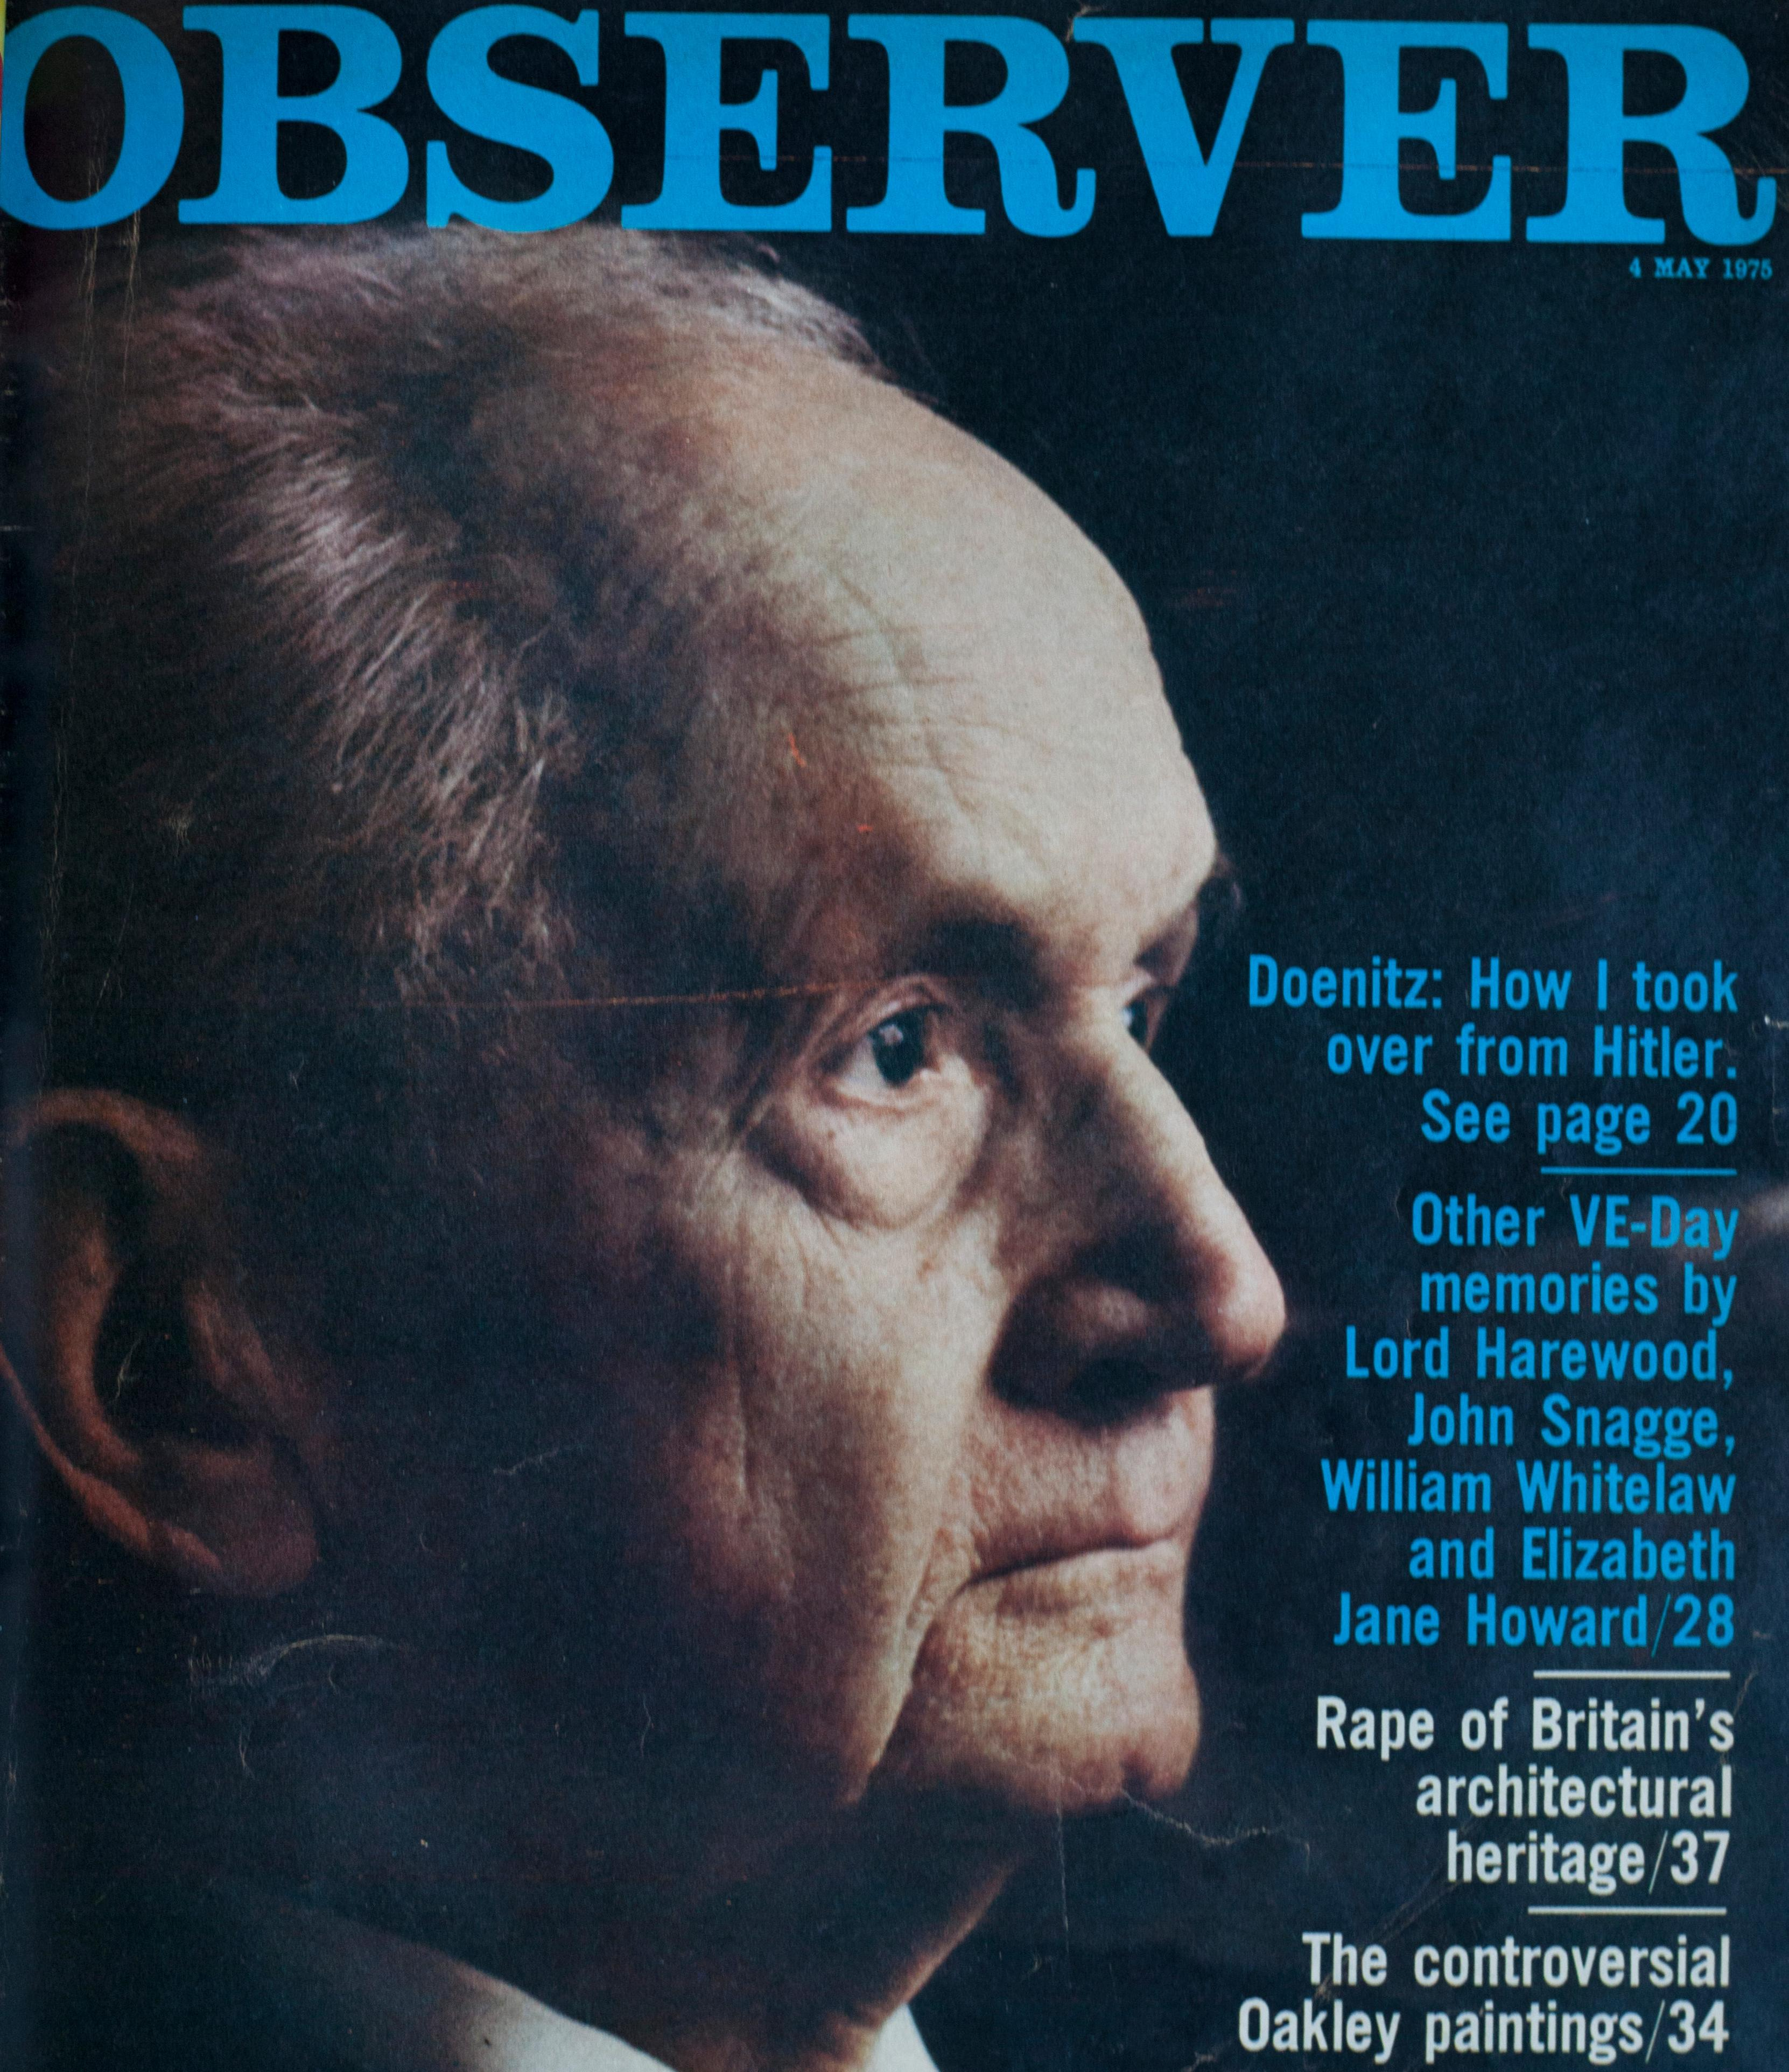 From the archive: The silence of Karl Doenitz